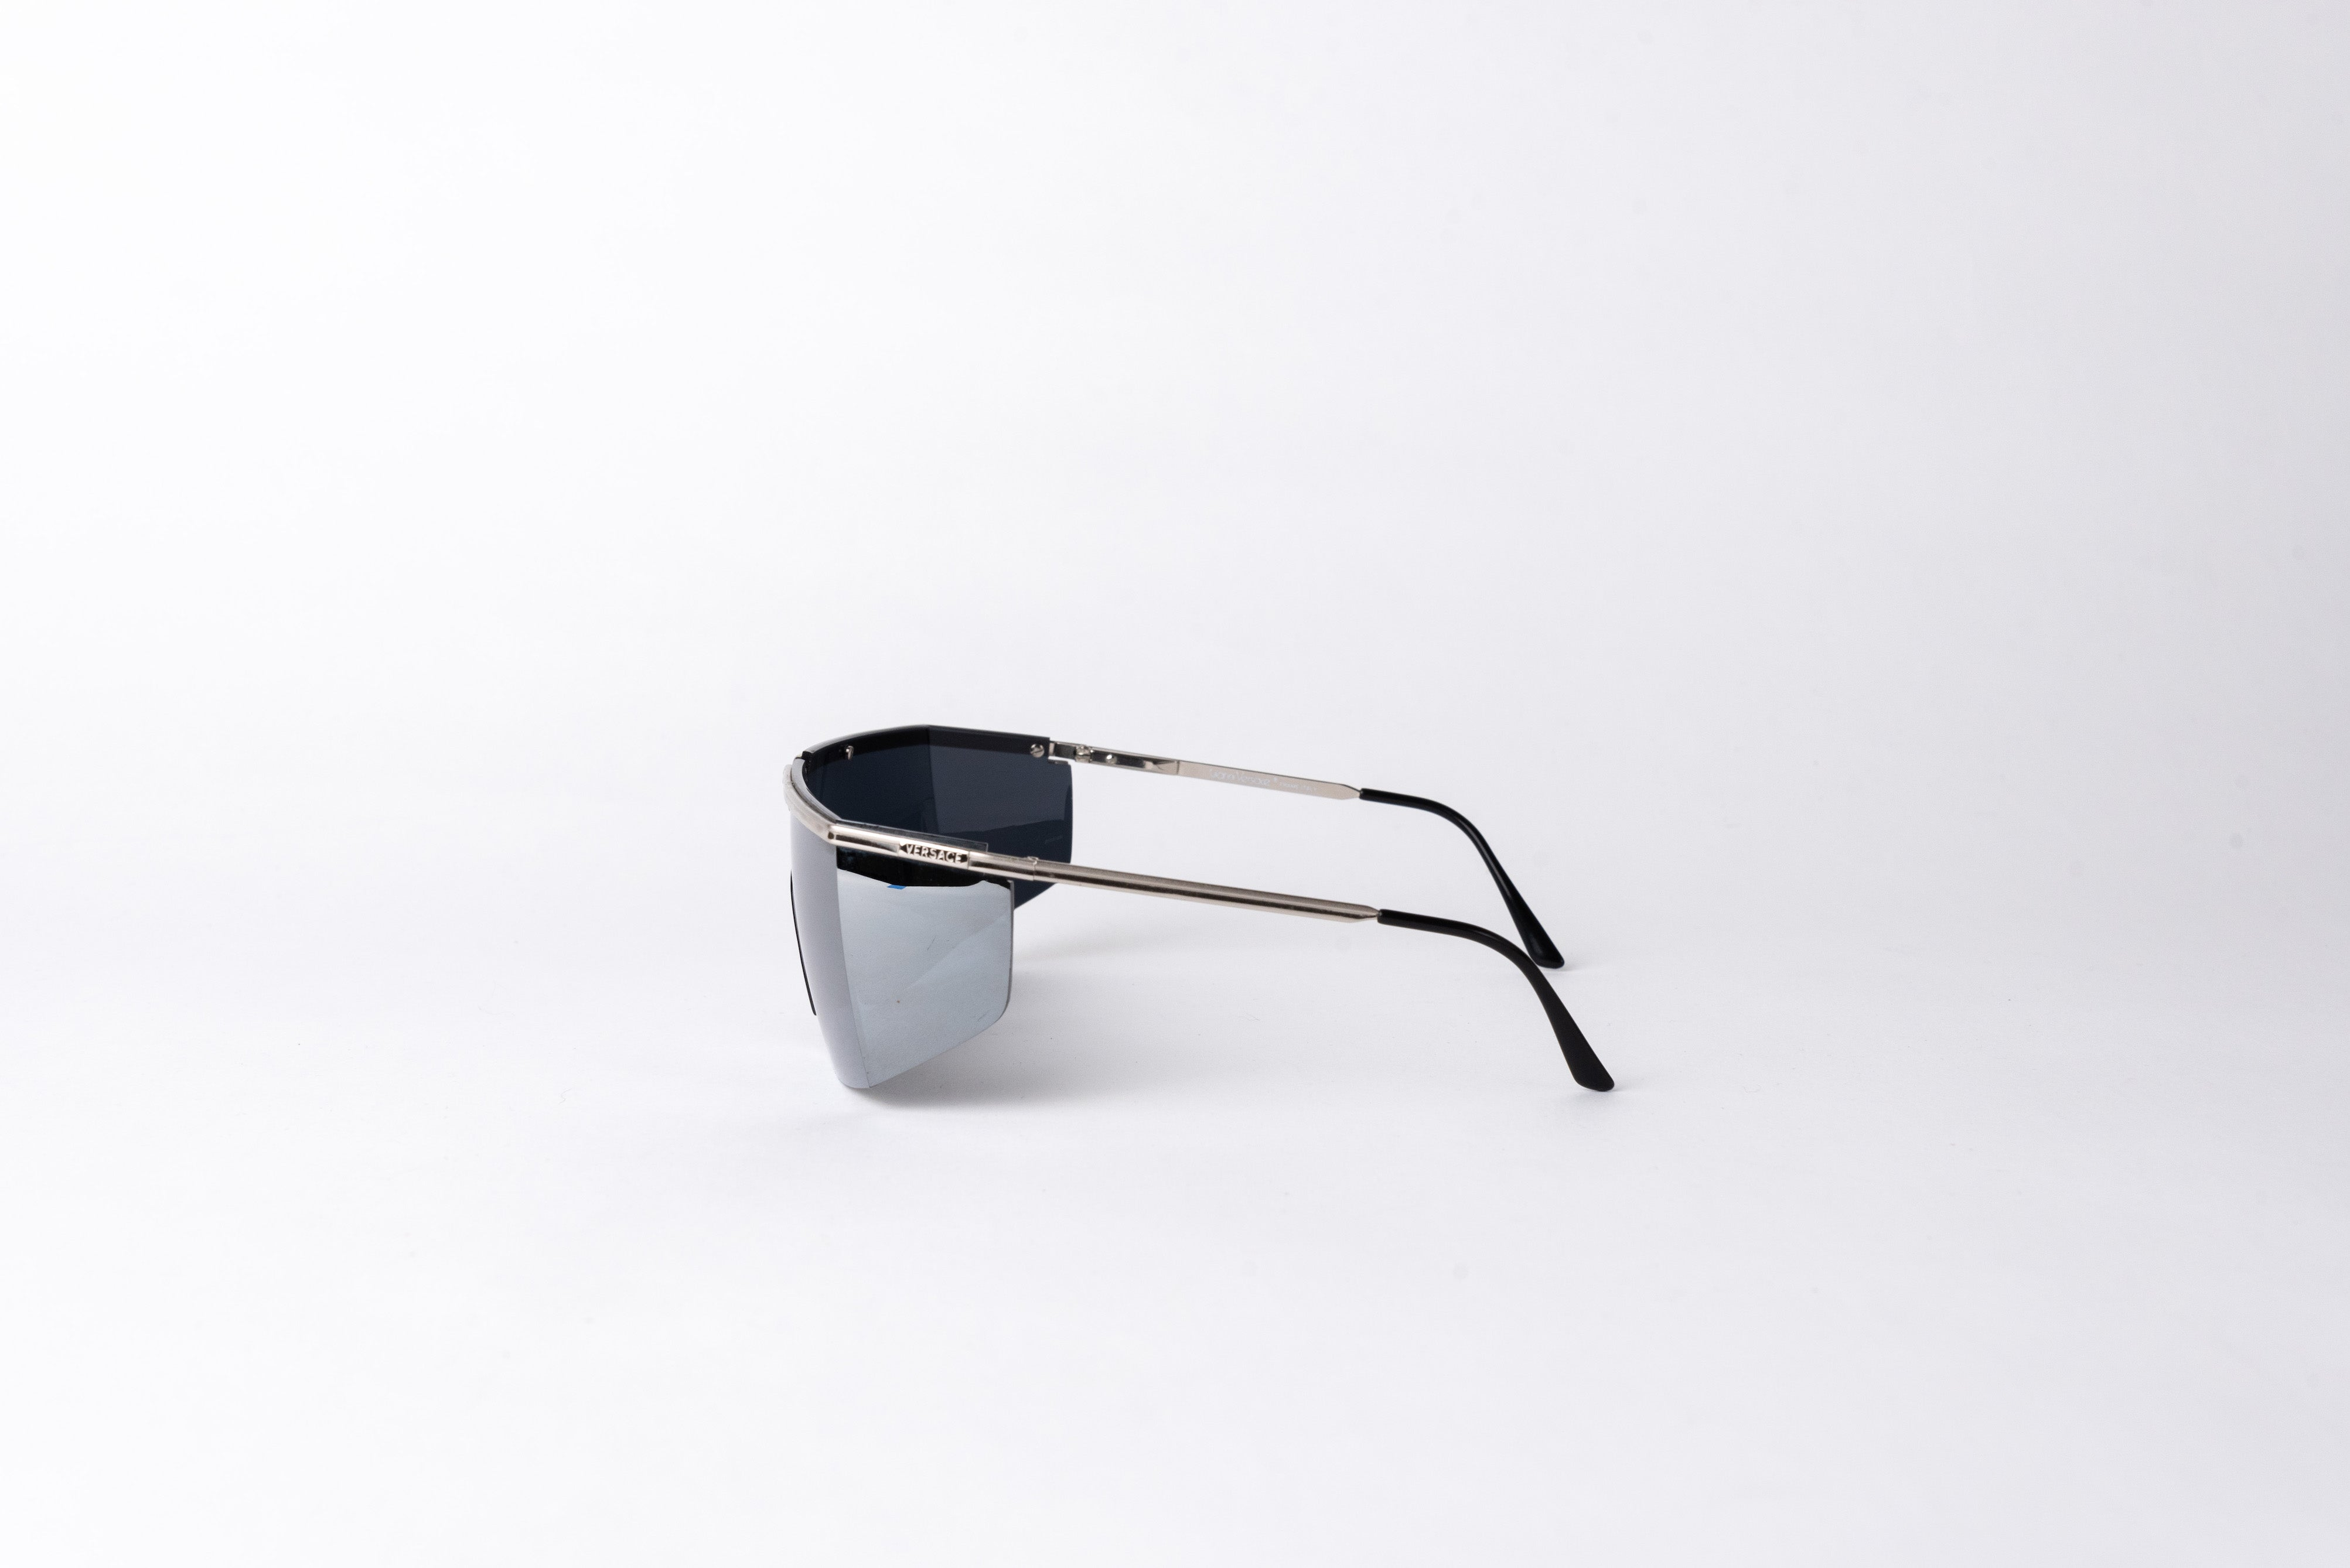 Gianni Versace <br> 1980's mirrored wrap shield sunglasses